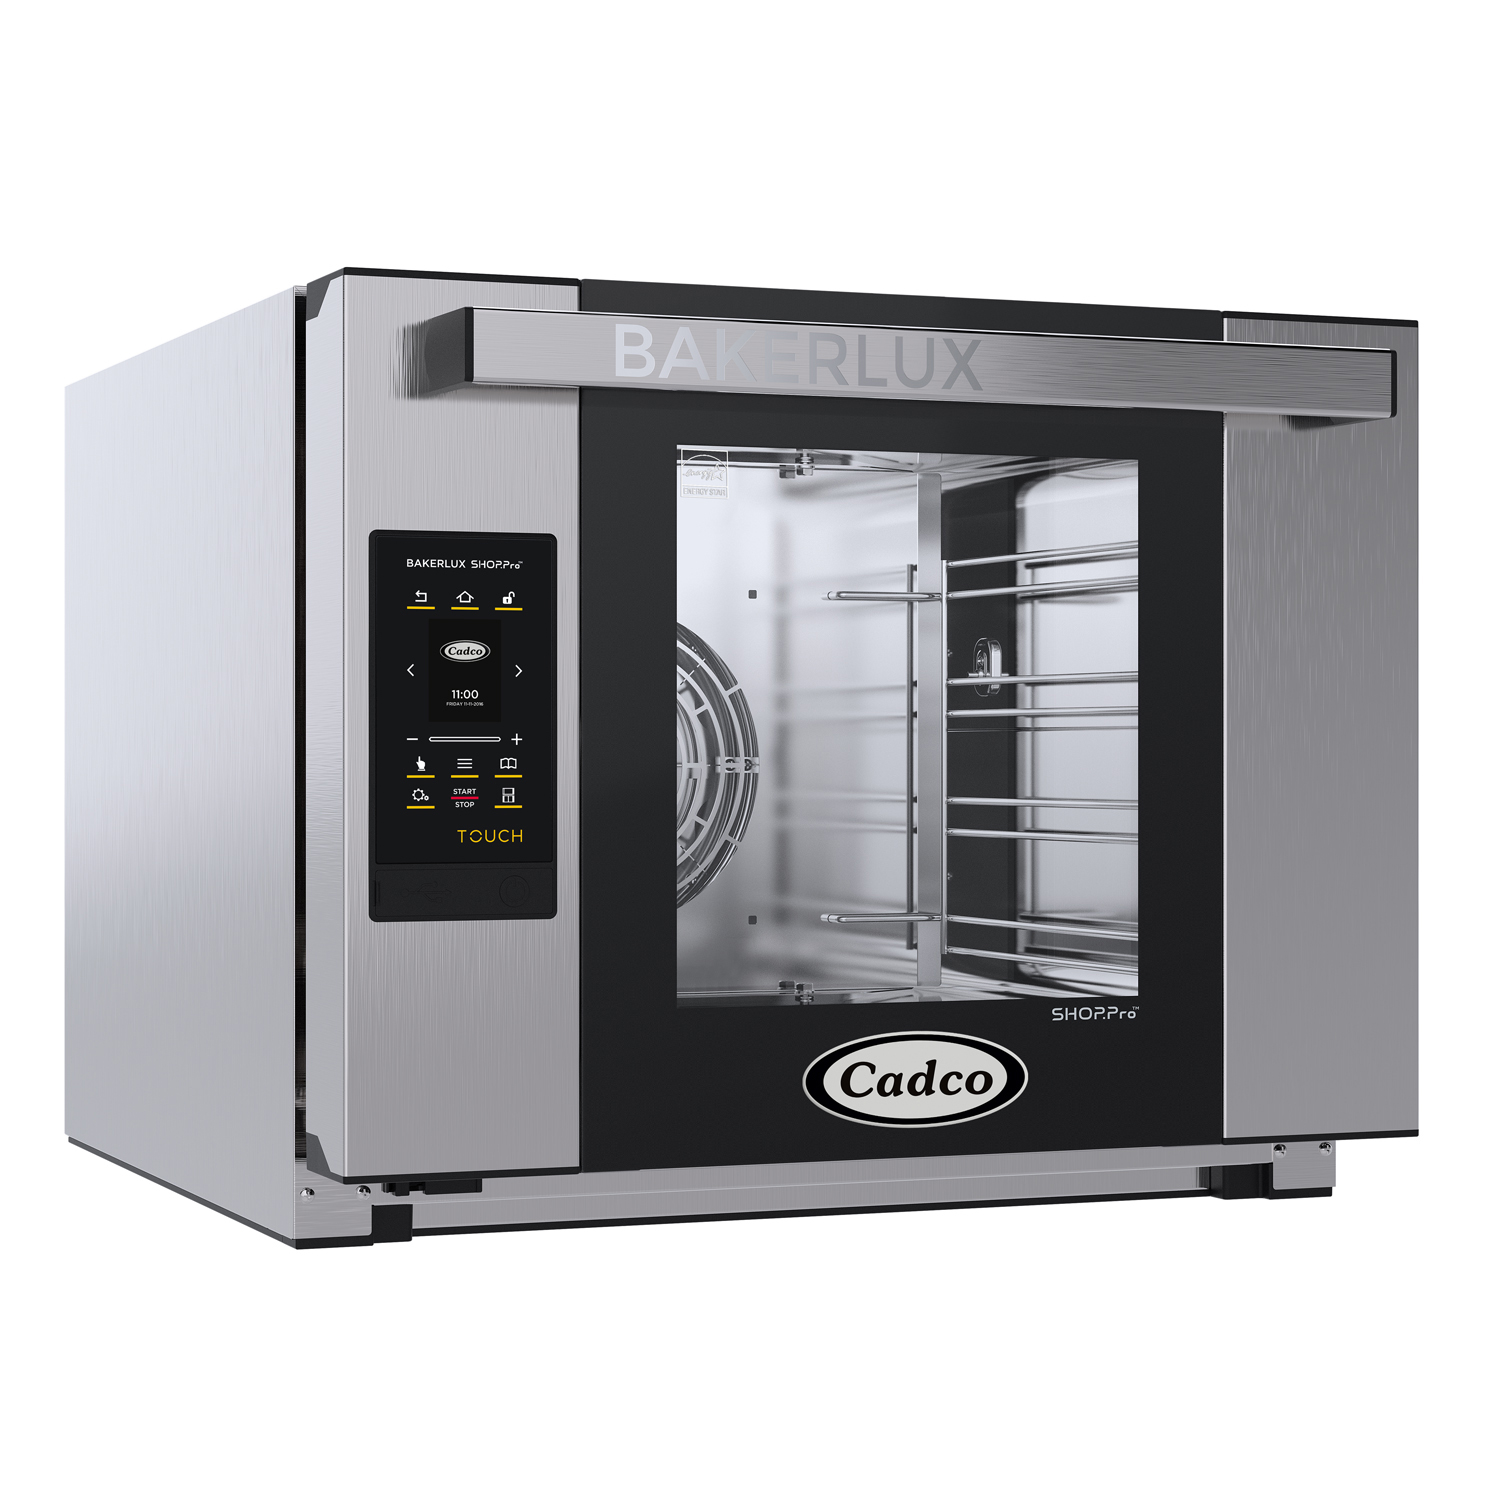 Cadco XAFT-04HS-TD convection oven, electric